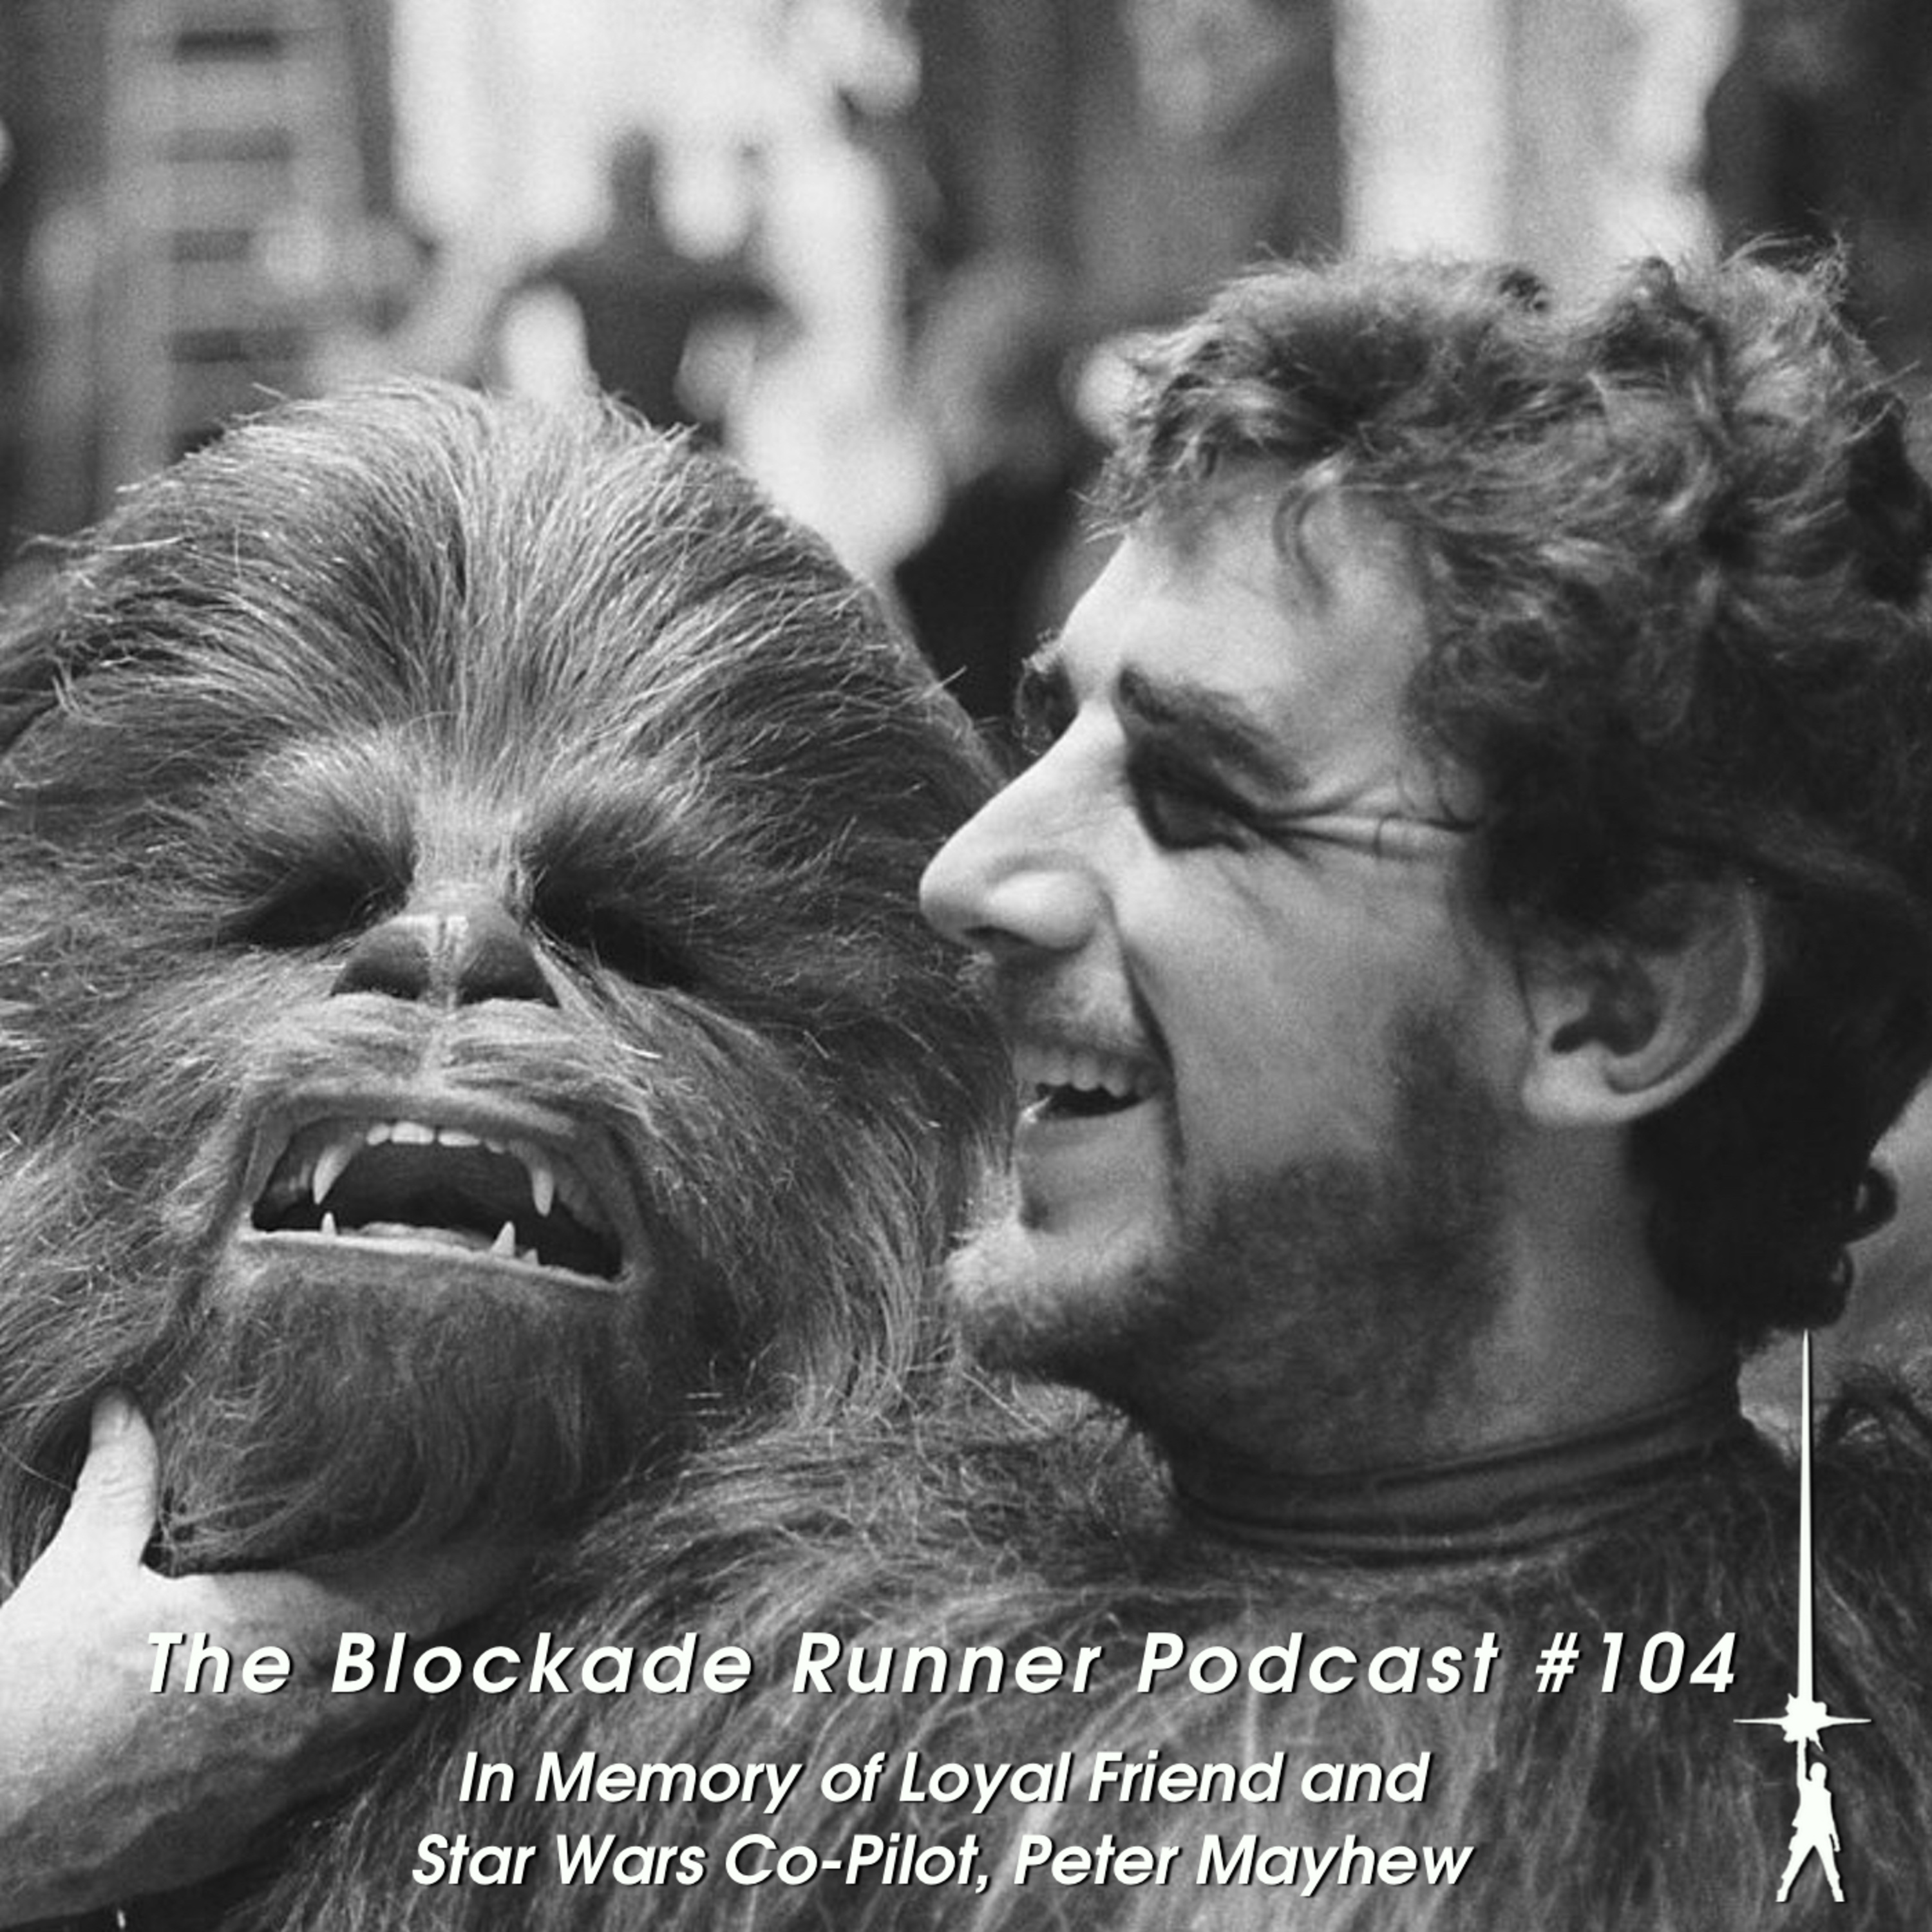 In Memory of Loyal Friend and Star Wars Co-Pilot, Peter Mayhew - The Blockade Runner Podcast #104